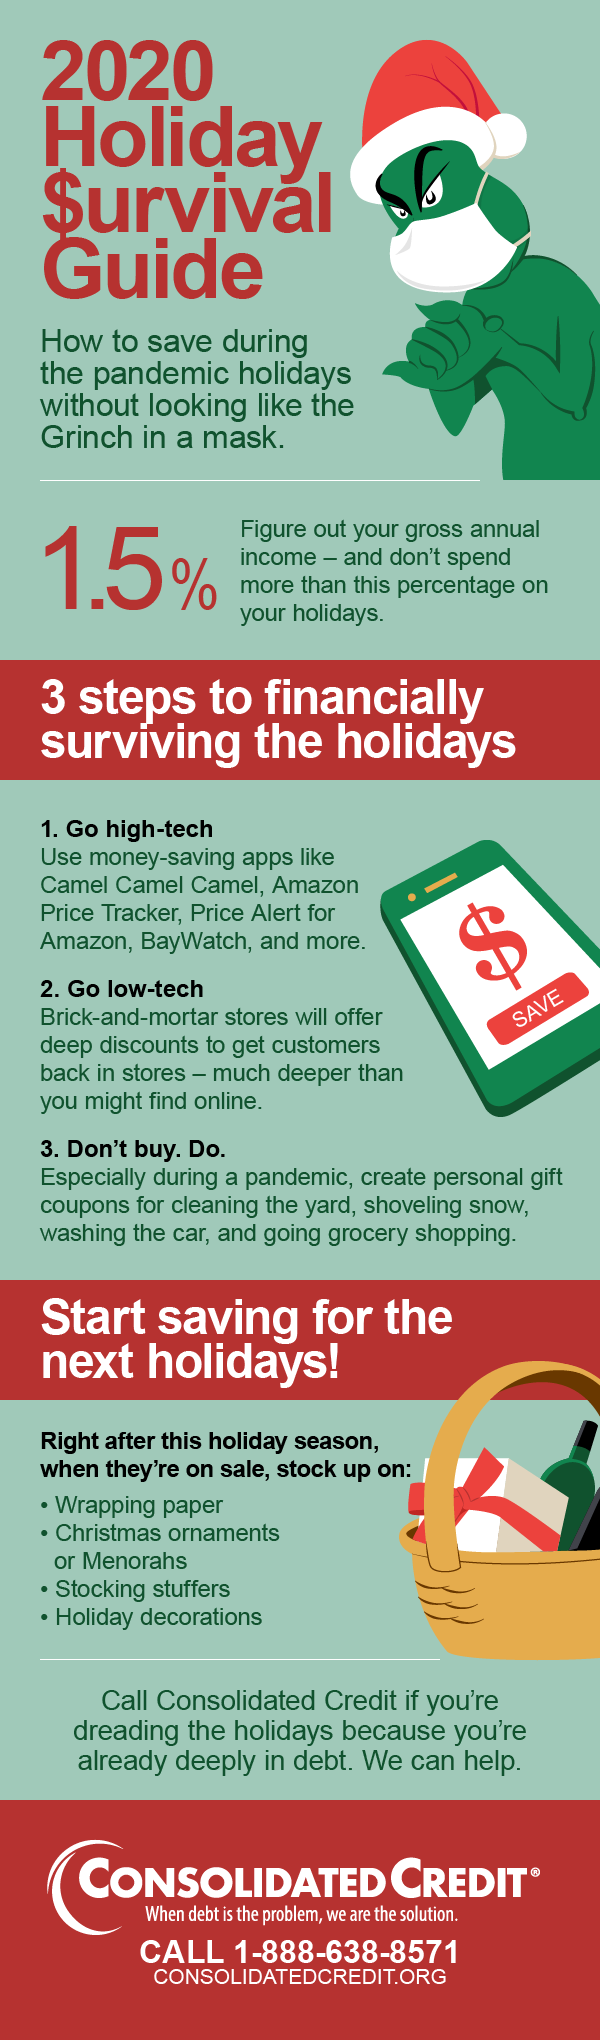 Holiday $urvival Guide Infographic